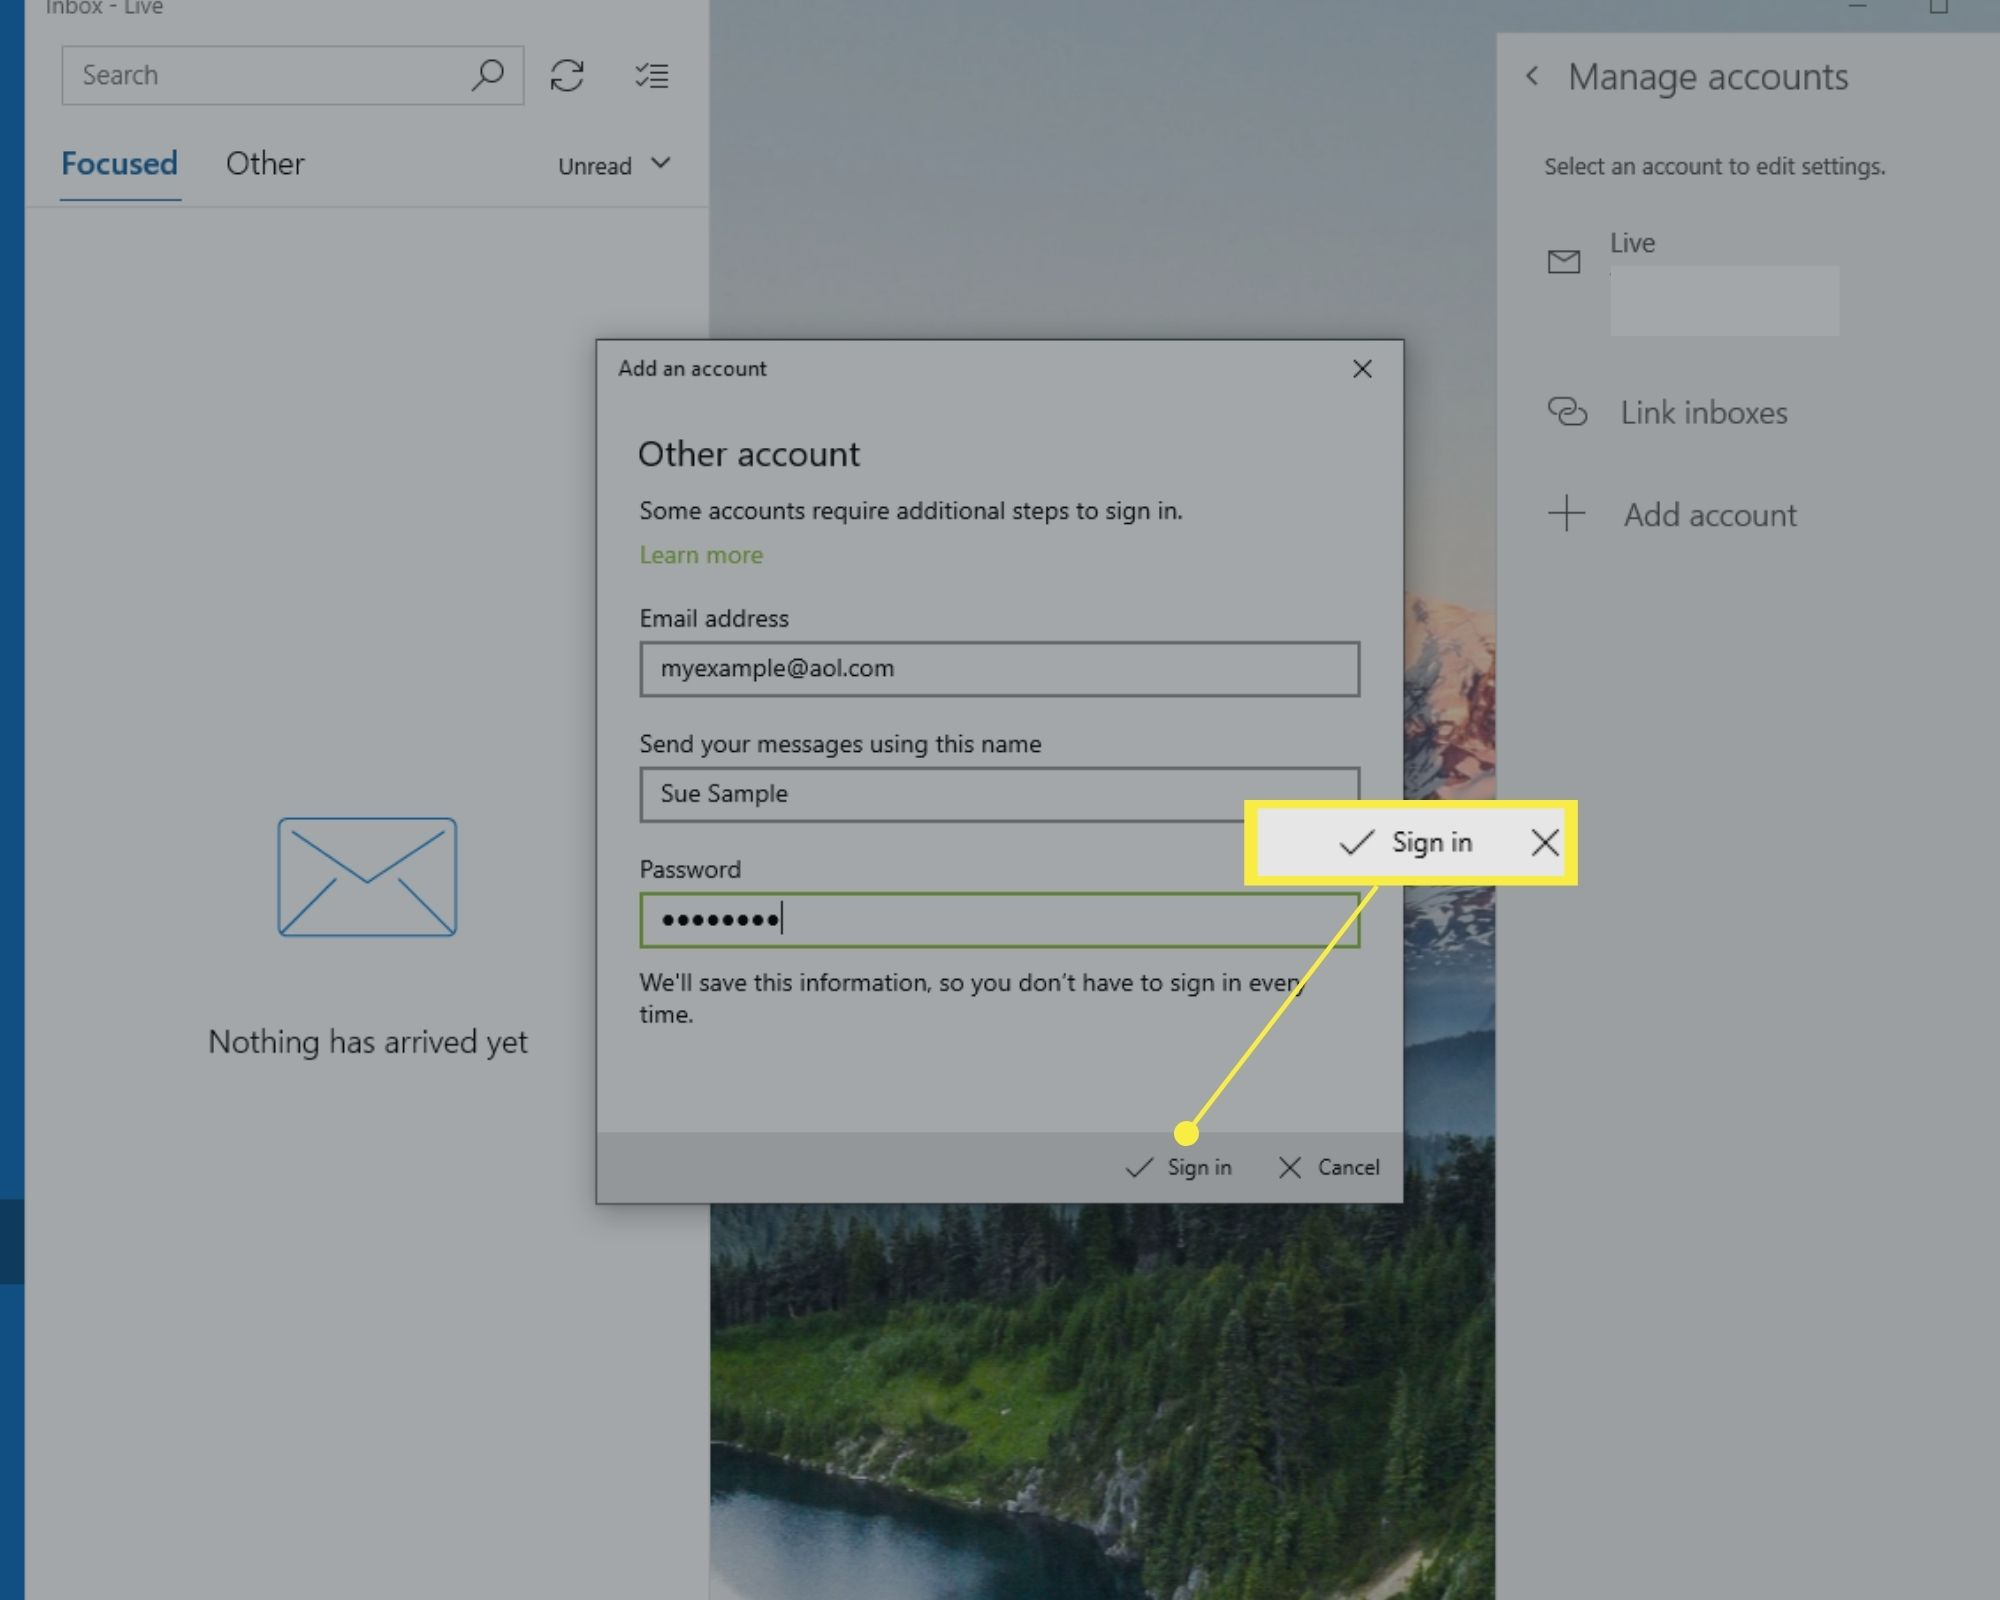 Sign in option on Windows 10 Mail Add an account window.